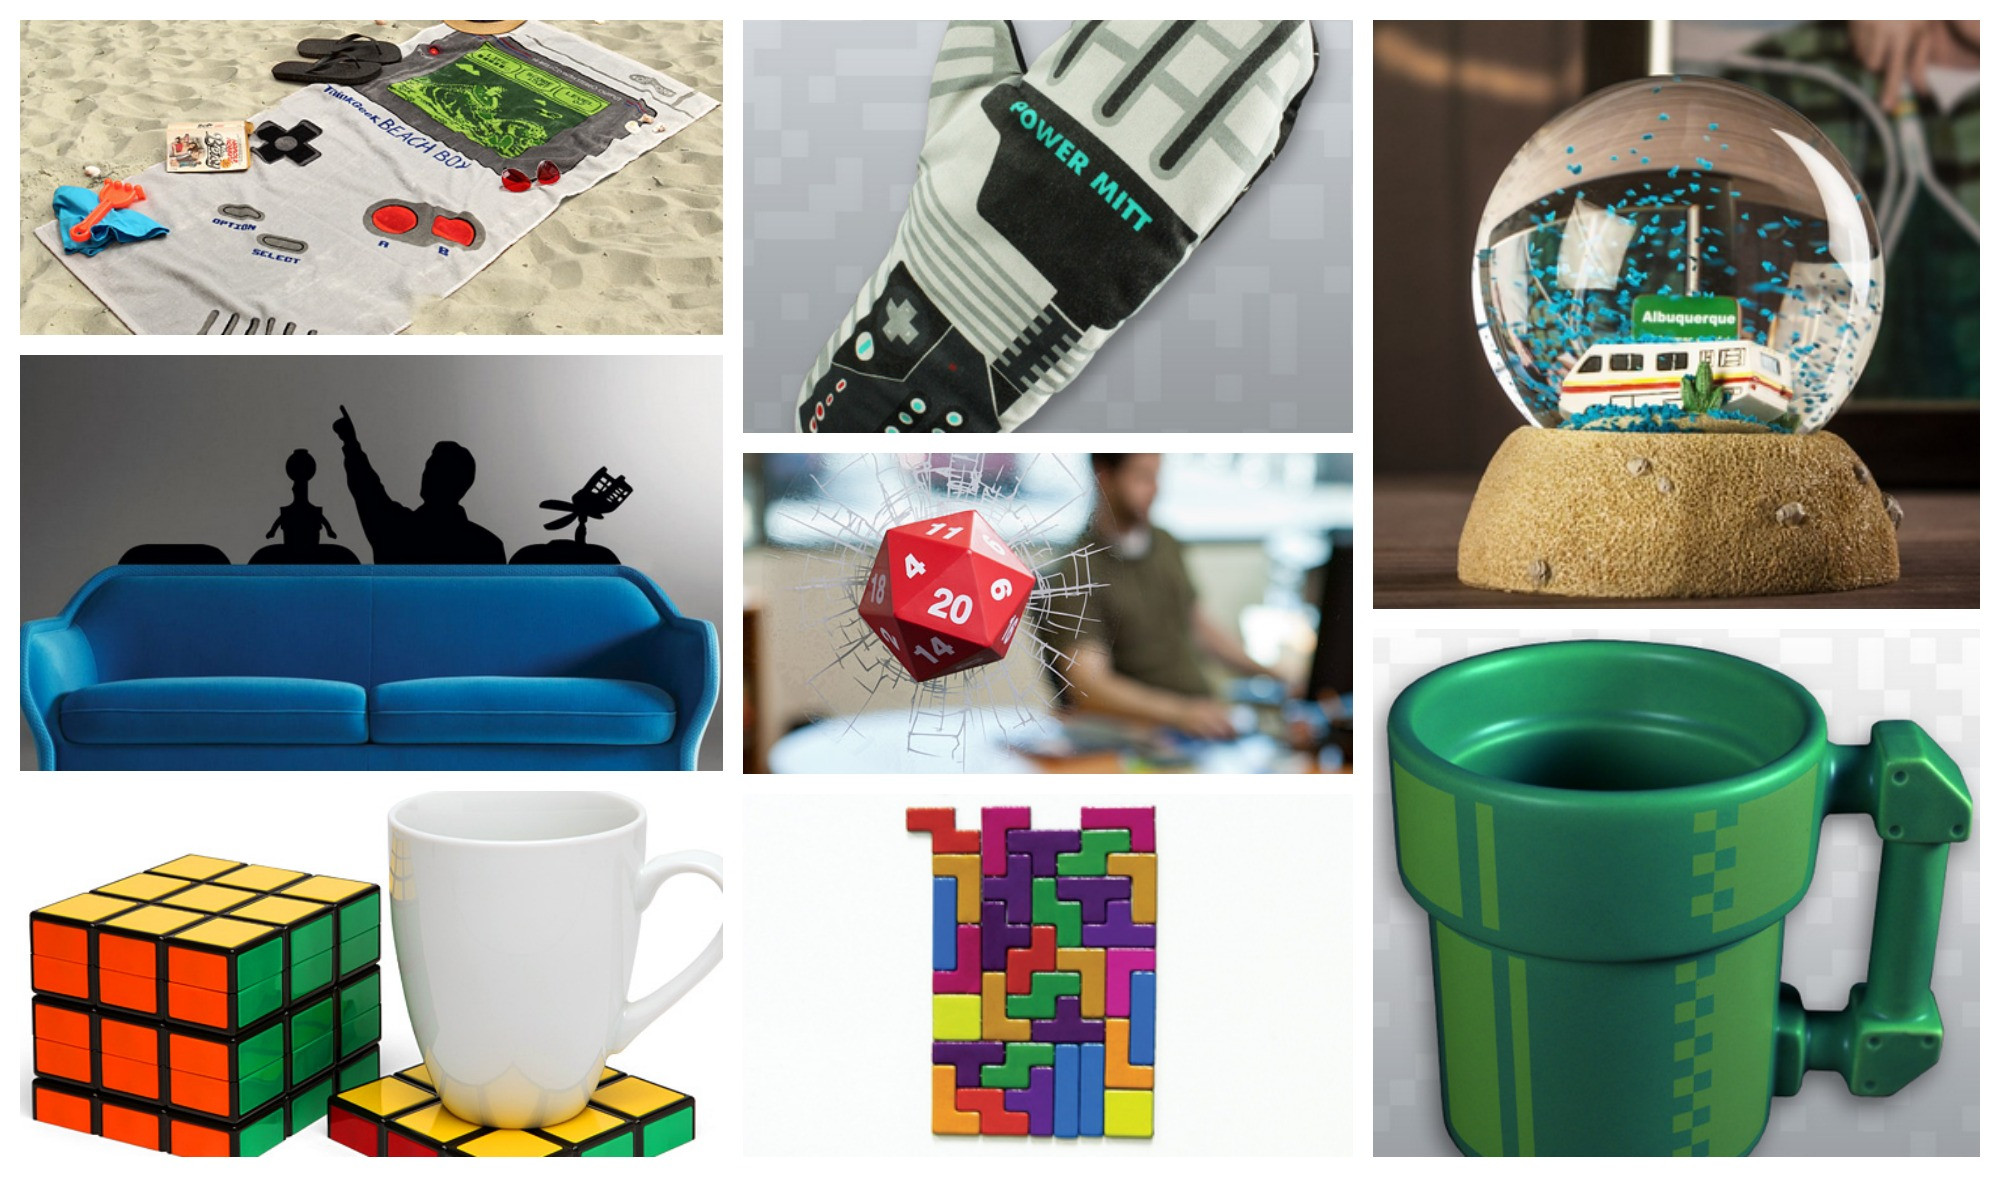 Best ideas about Nerdy Gift Ideas . Save or Pin Holiday Guide to Geek Gifts V1 0 Our Nerd Home Now.